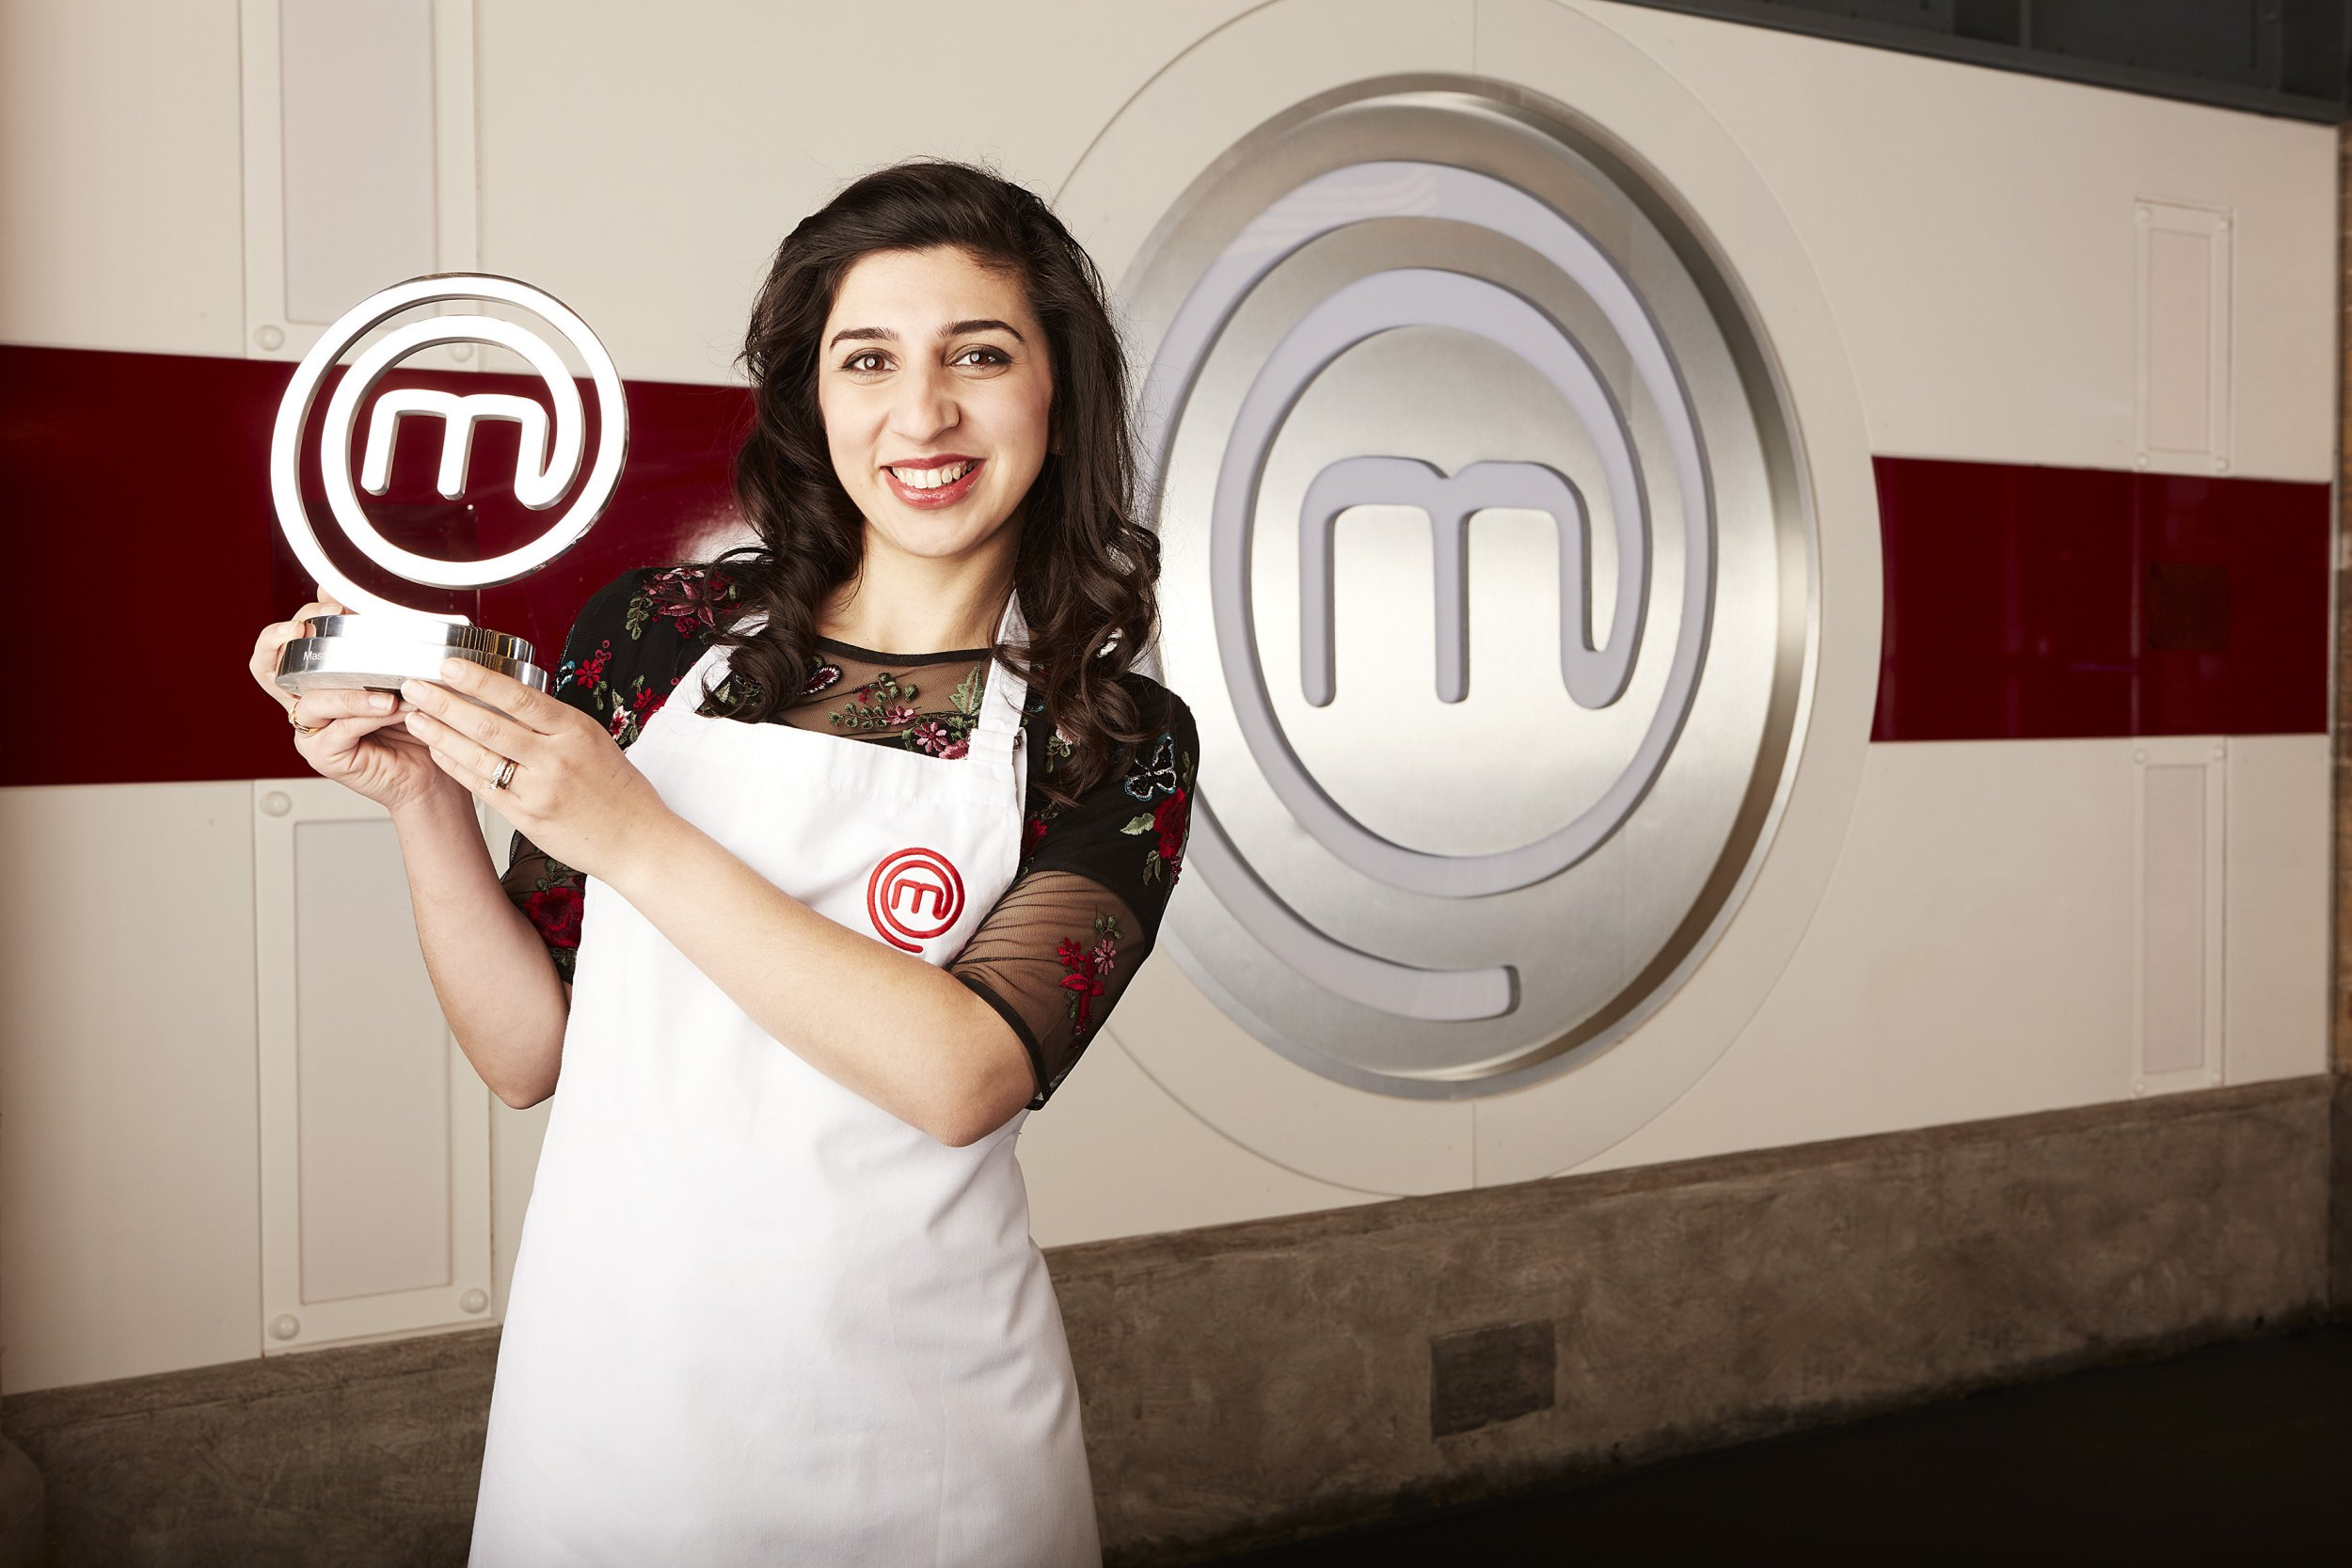 Masterchef winner Saliha Mahmood-Ahmed swamped with abuse from online trolls